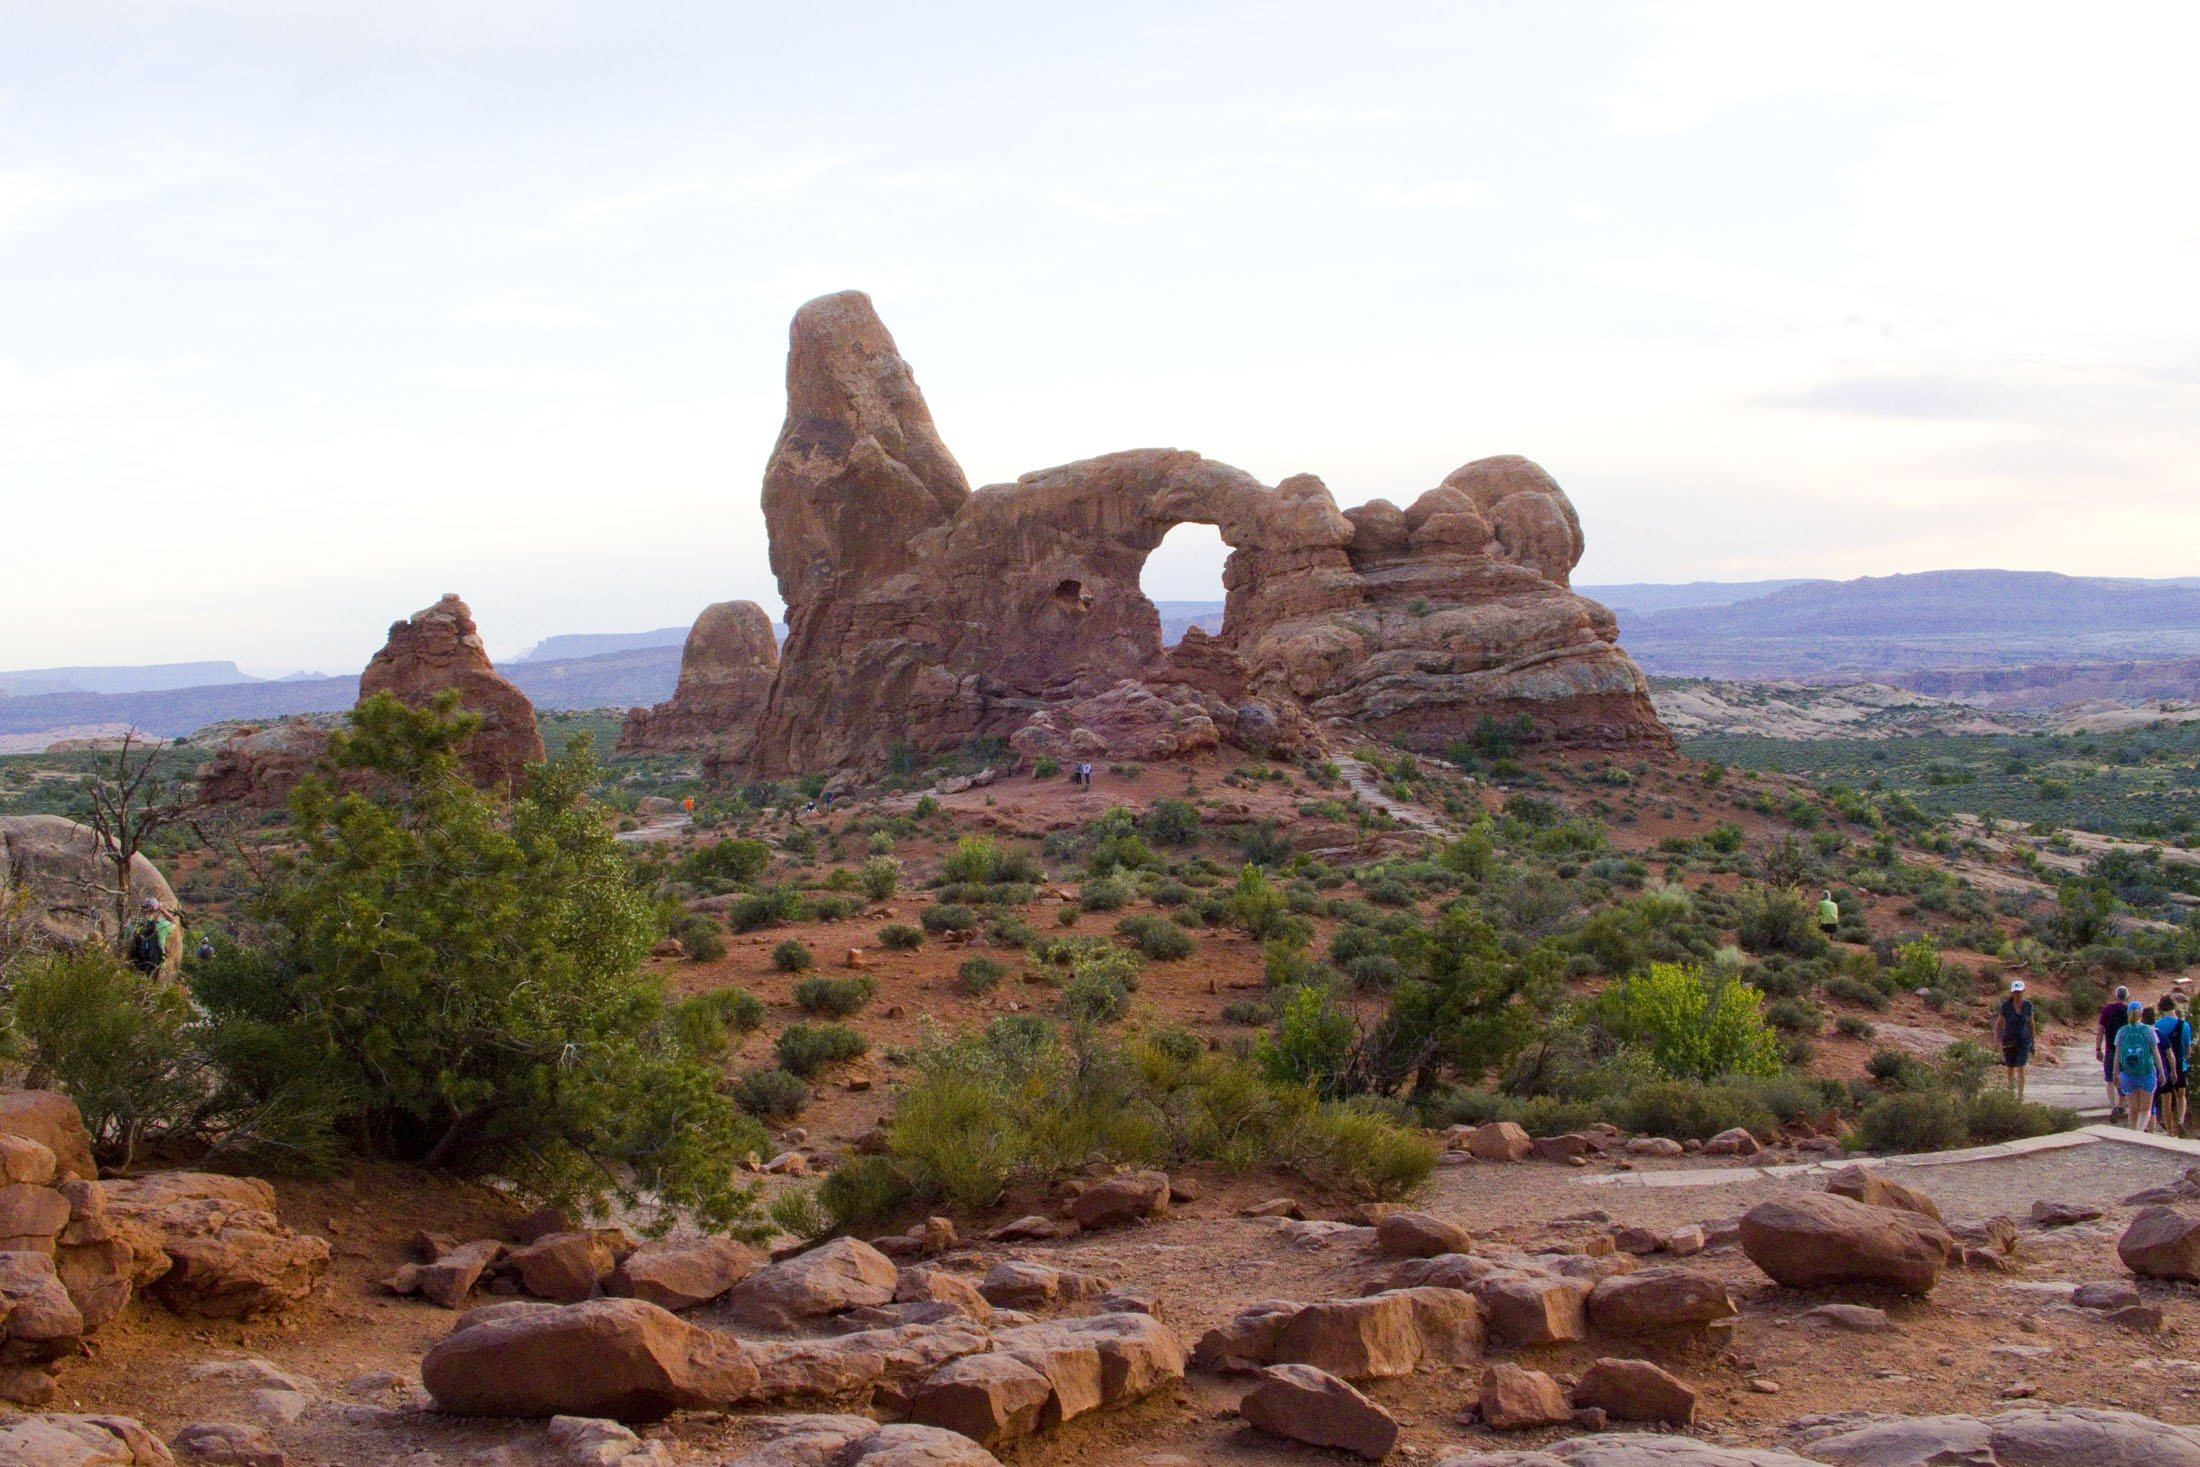 The Turret Arch is among 2,000 arches at Arches National Park in Utah. (Craig Davis/Craigslegztravels.com)